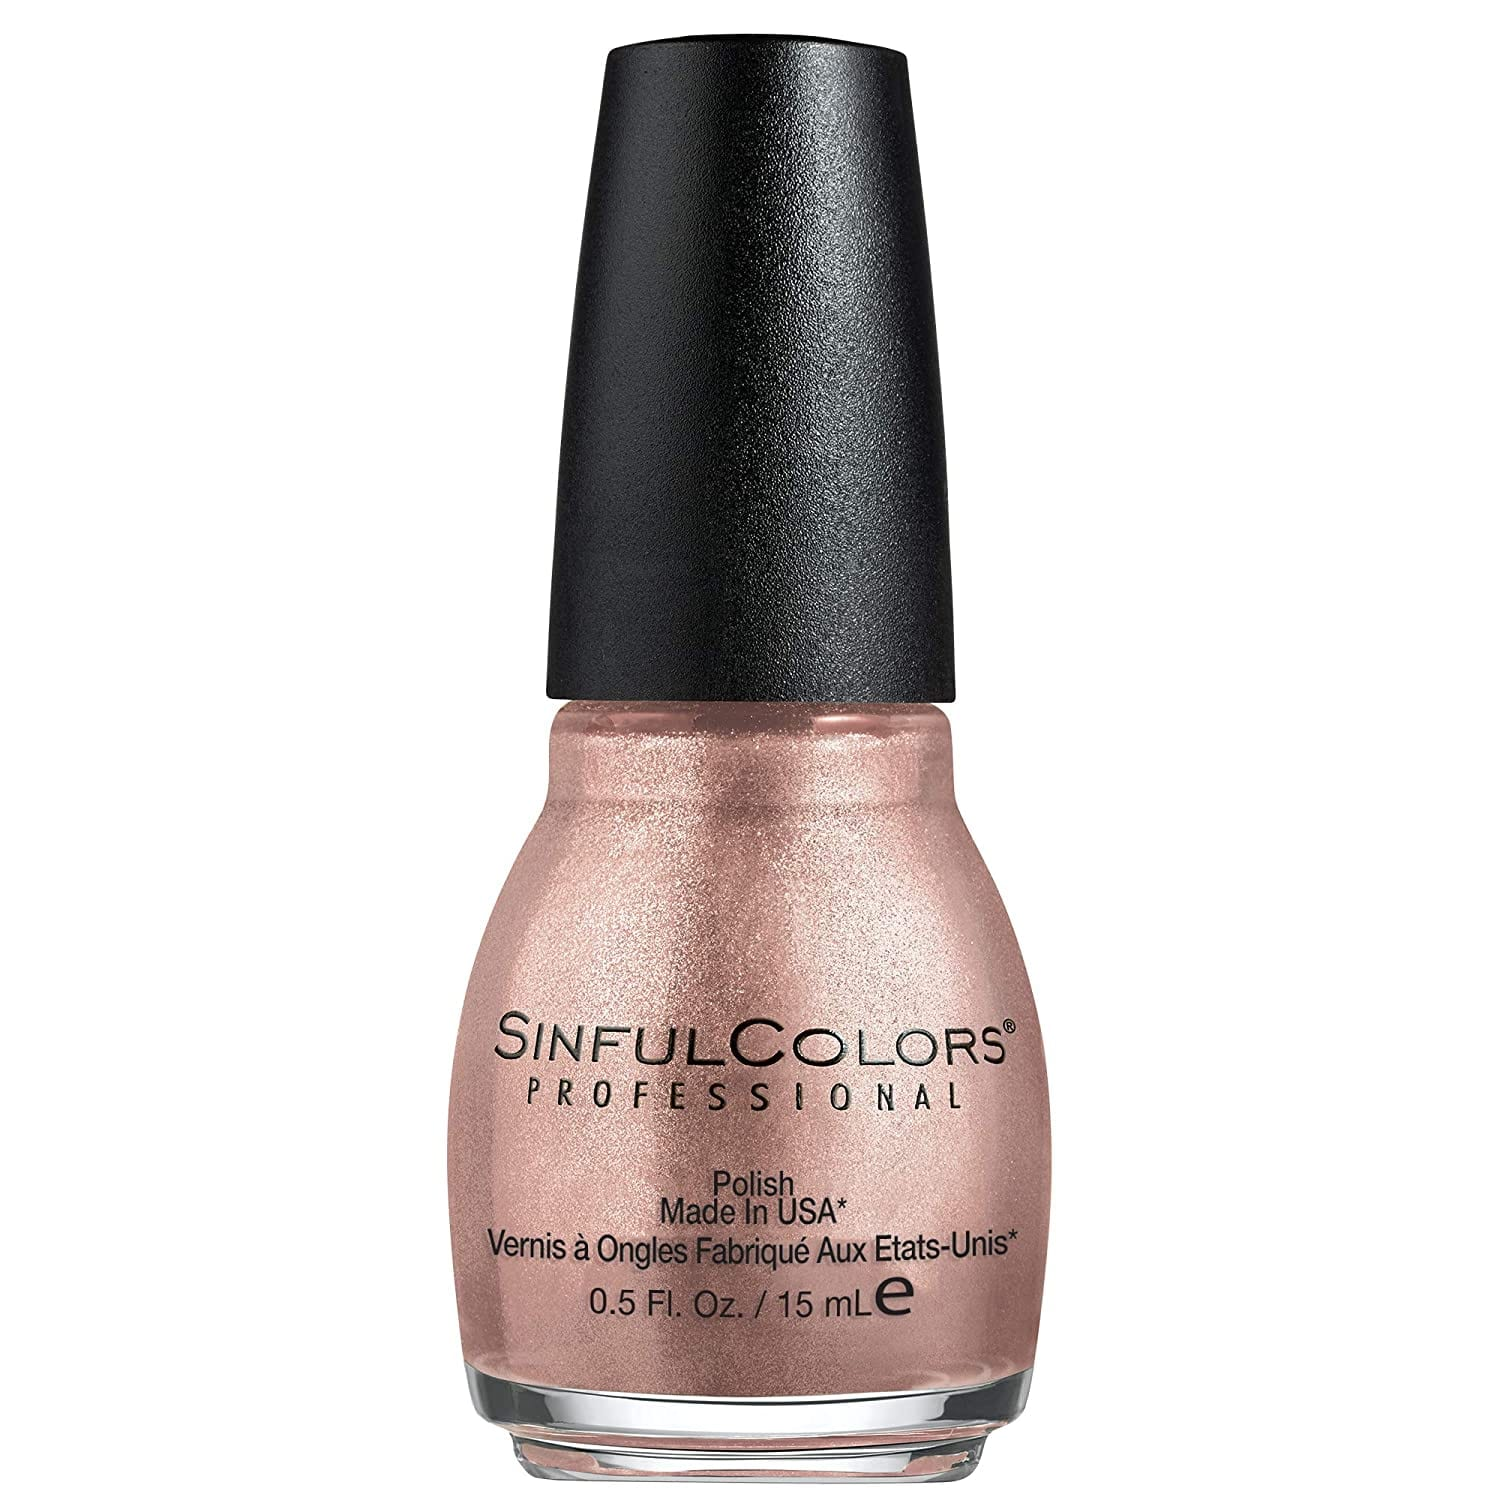 Sinful Colors Nail Color